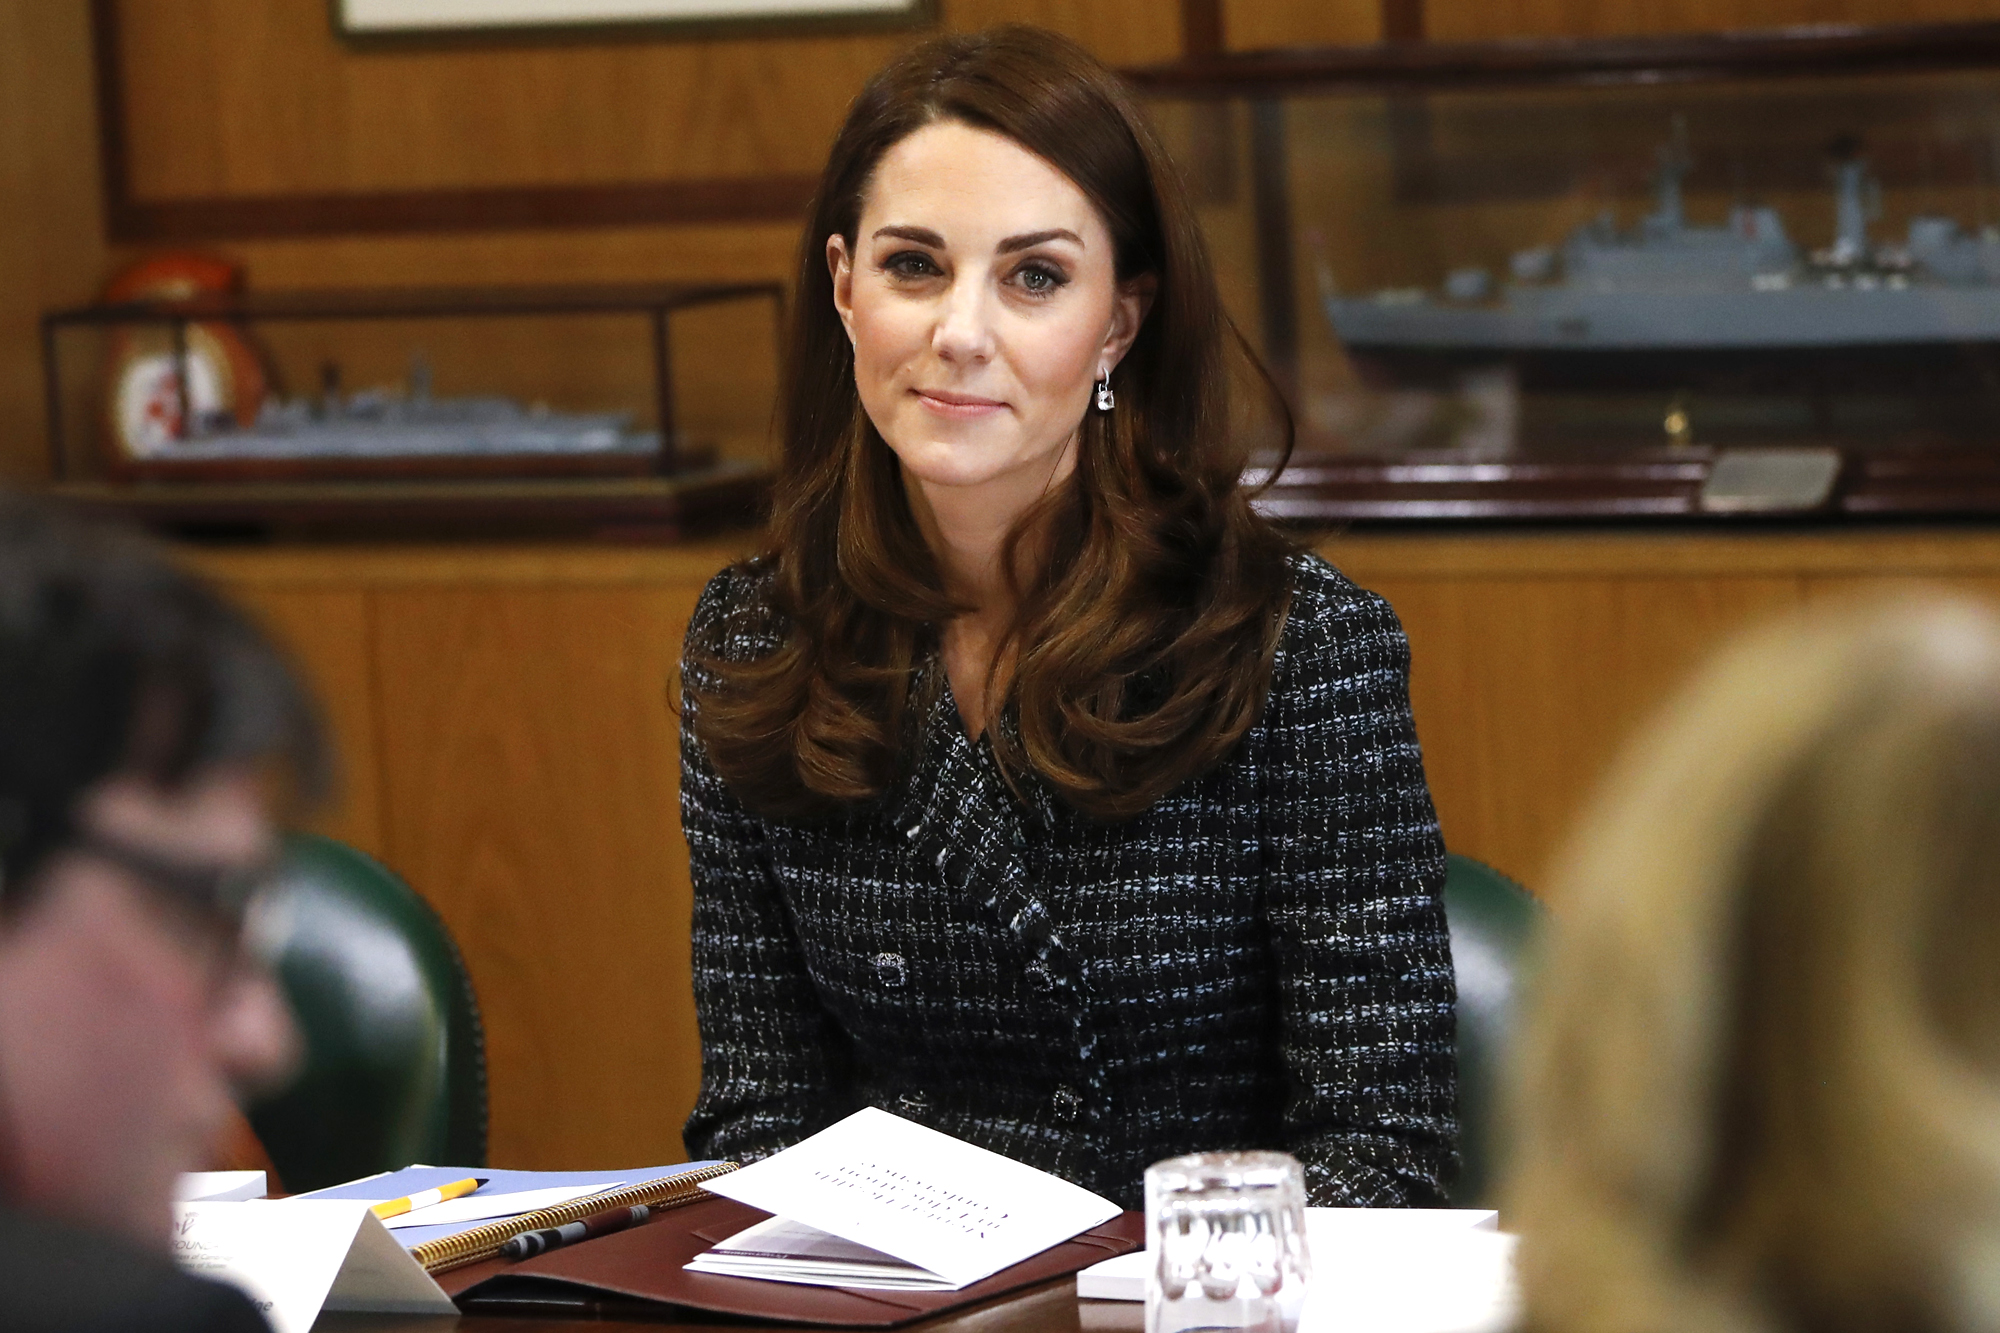 Kate Middleton Quietly Attended a (3-Hour!) Parent Meeting on Mental Health at Her Children's School duchess-cambridge-12-2000